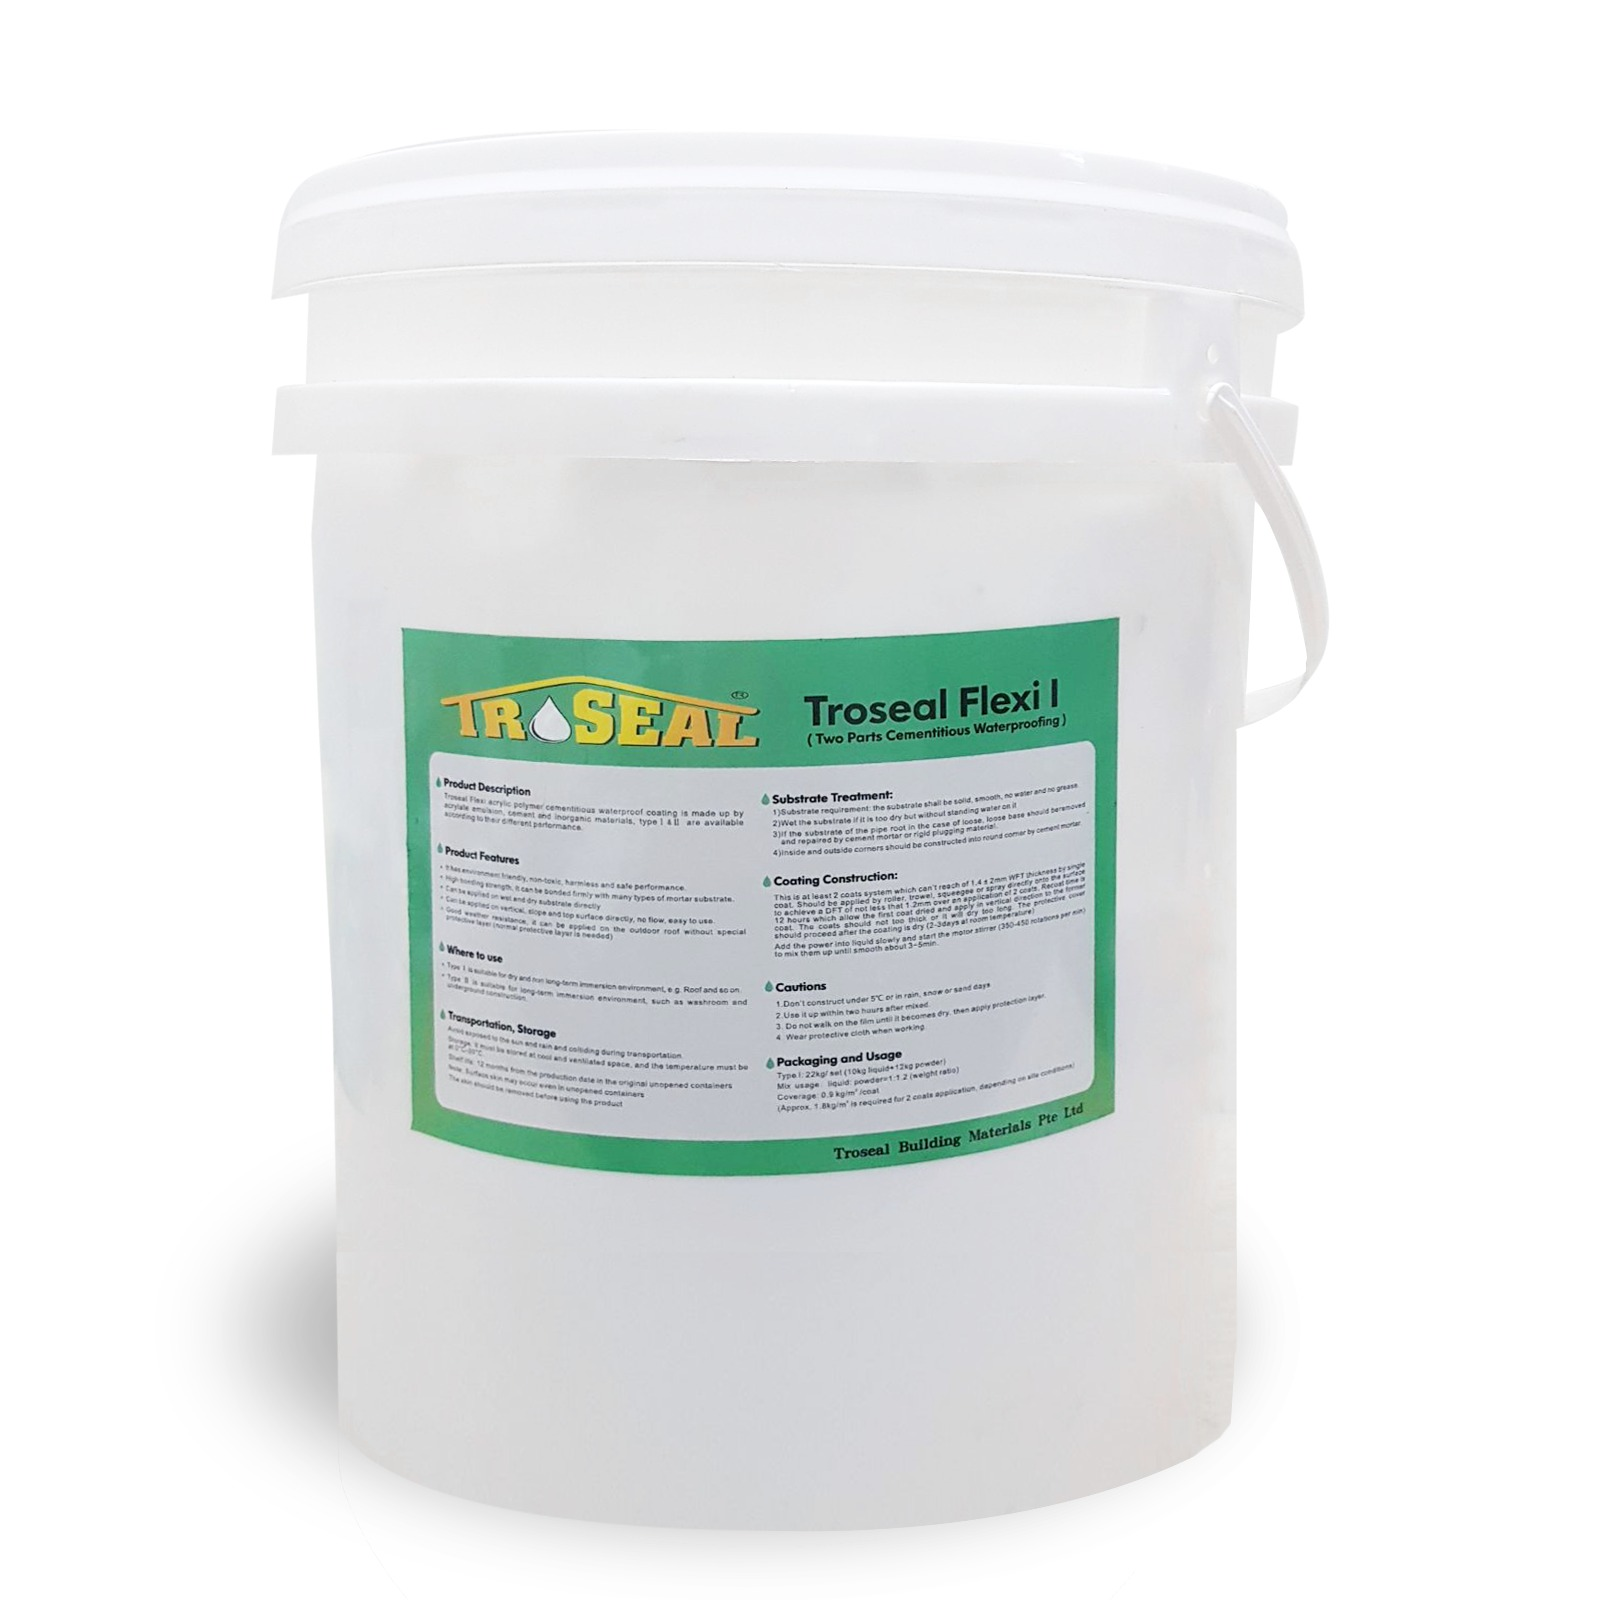 Troseal Flexi - 2 Parts Cementitious WaterProofing System